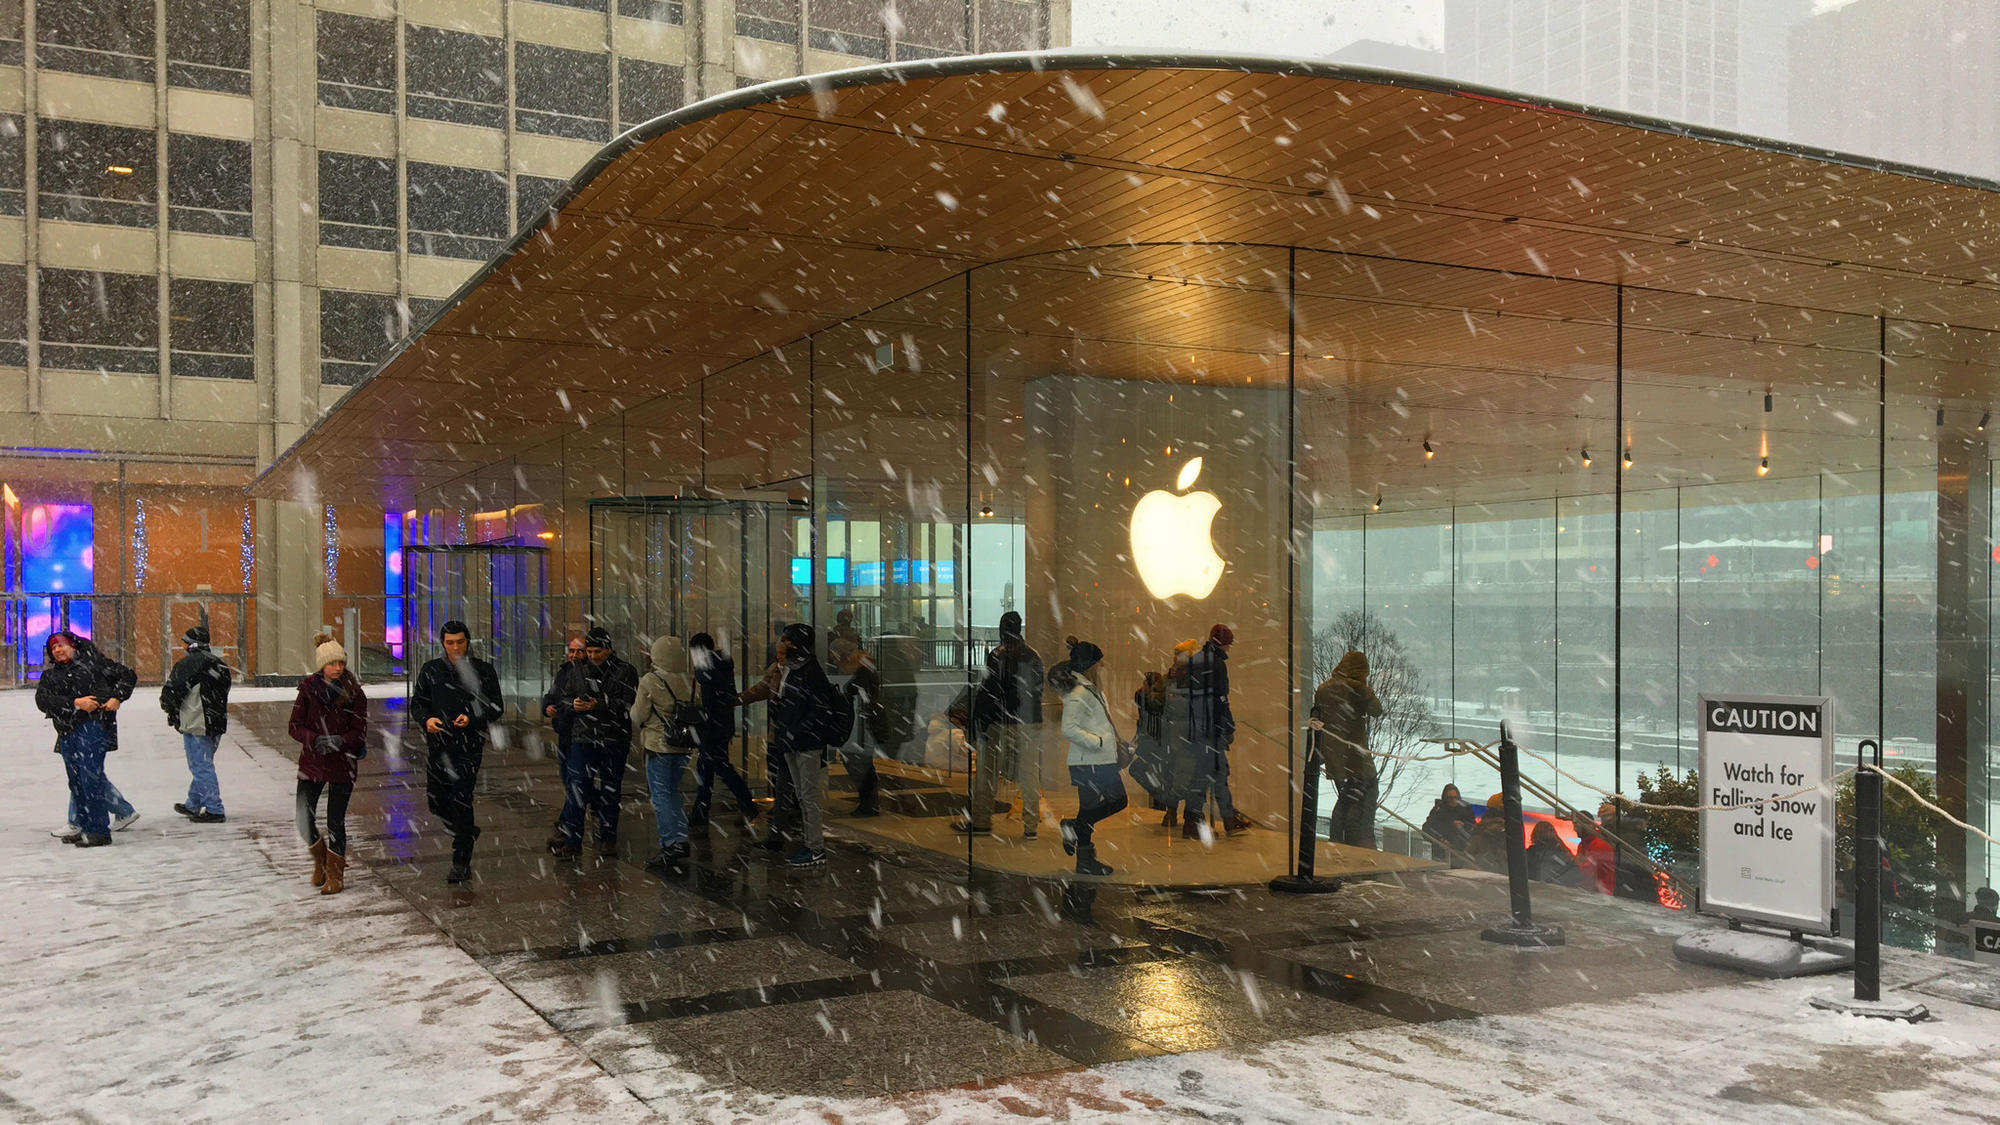 Dangling icicles at Apple store not company's worst problem ...